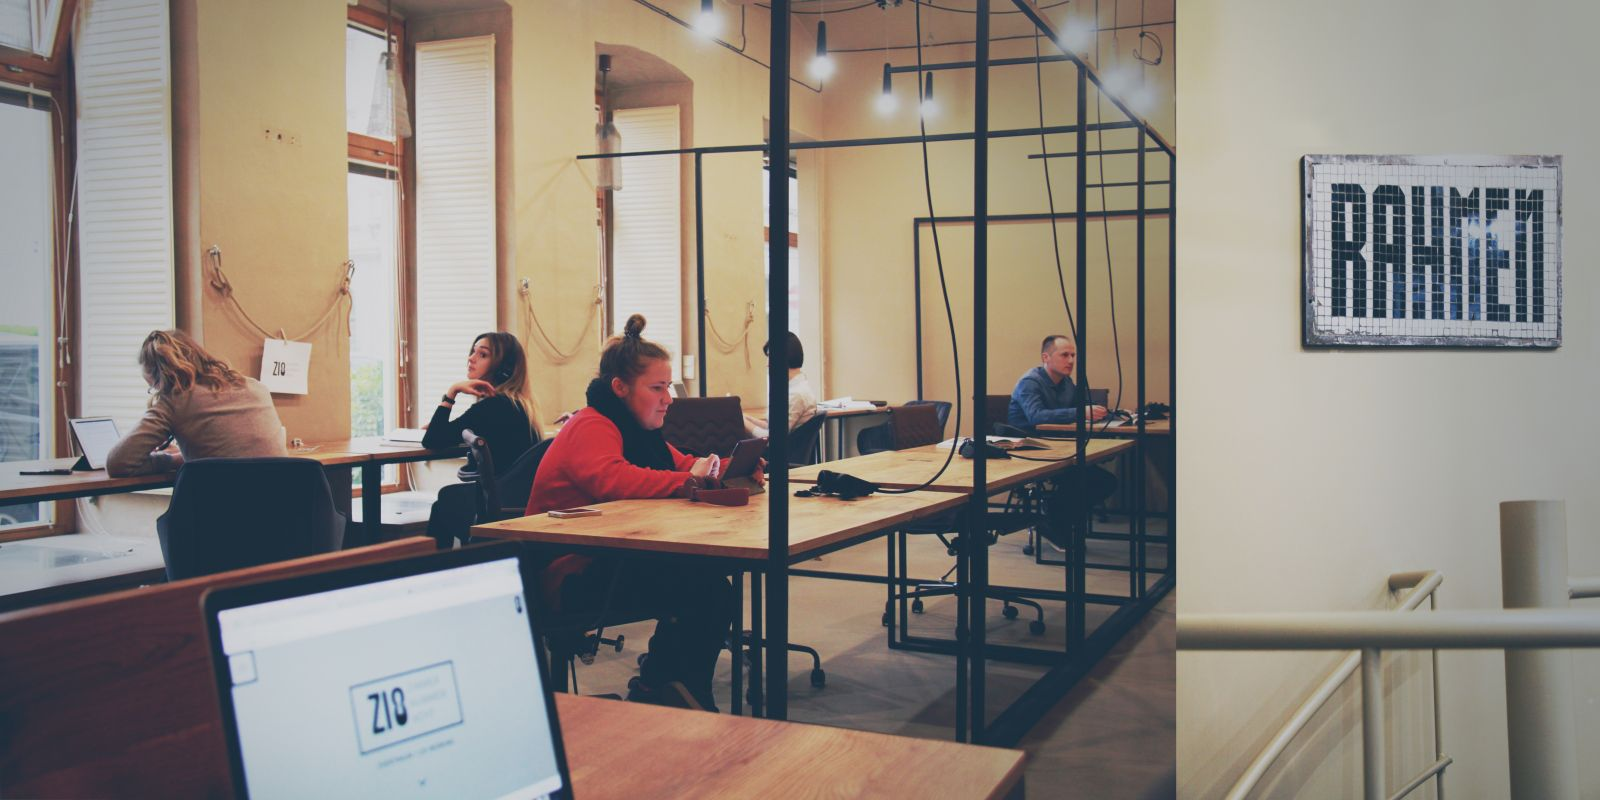 ZI8 Coworking & Event Space, Vienna